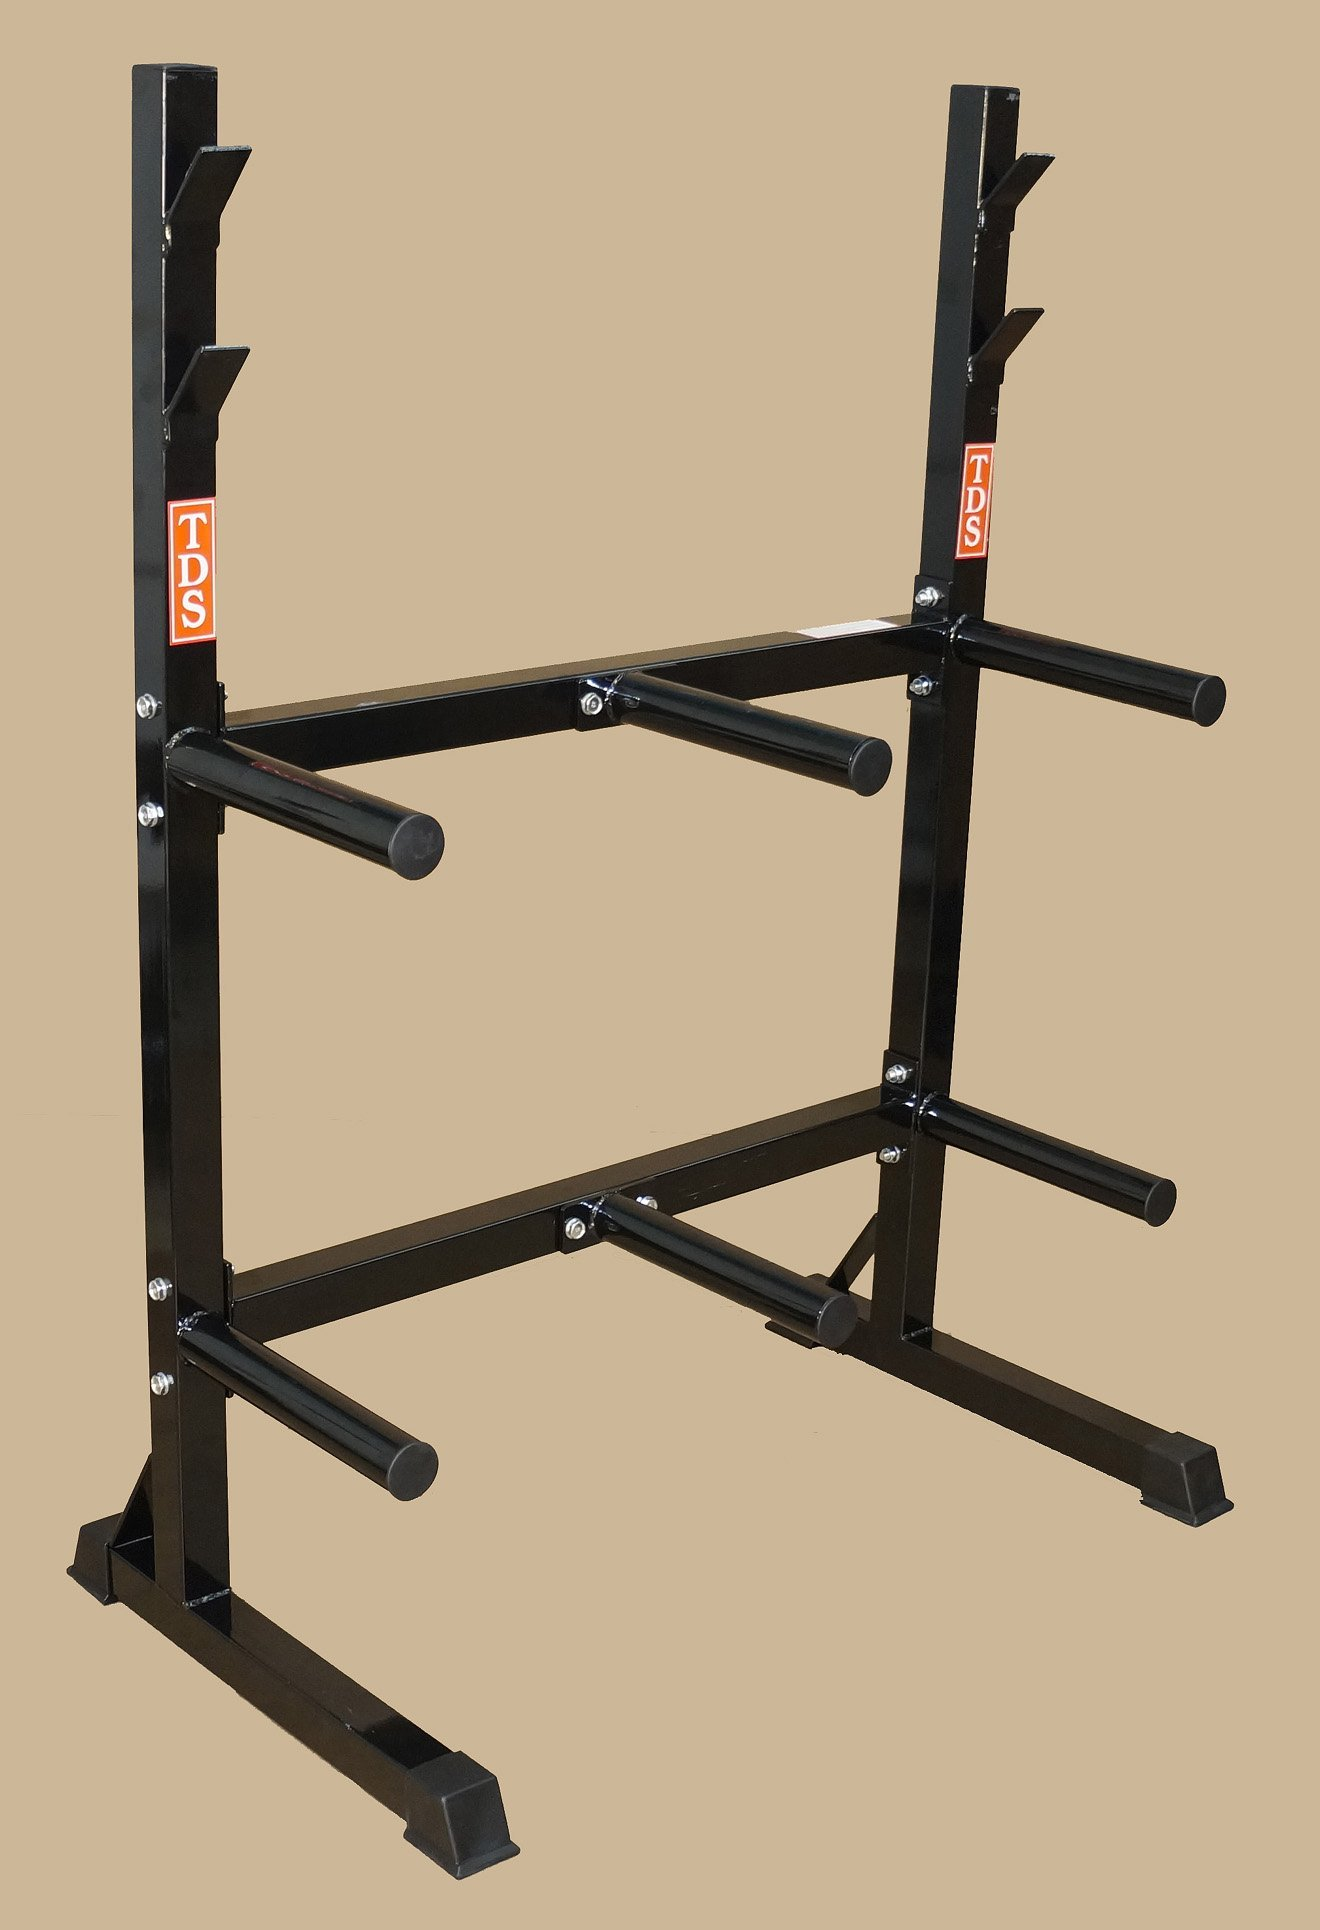 TDS Front Loading Rack for Rubber & Iron Olympic Plates